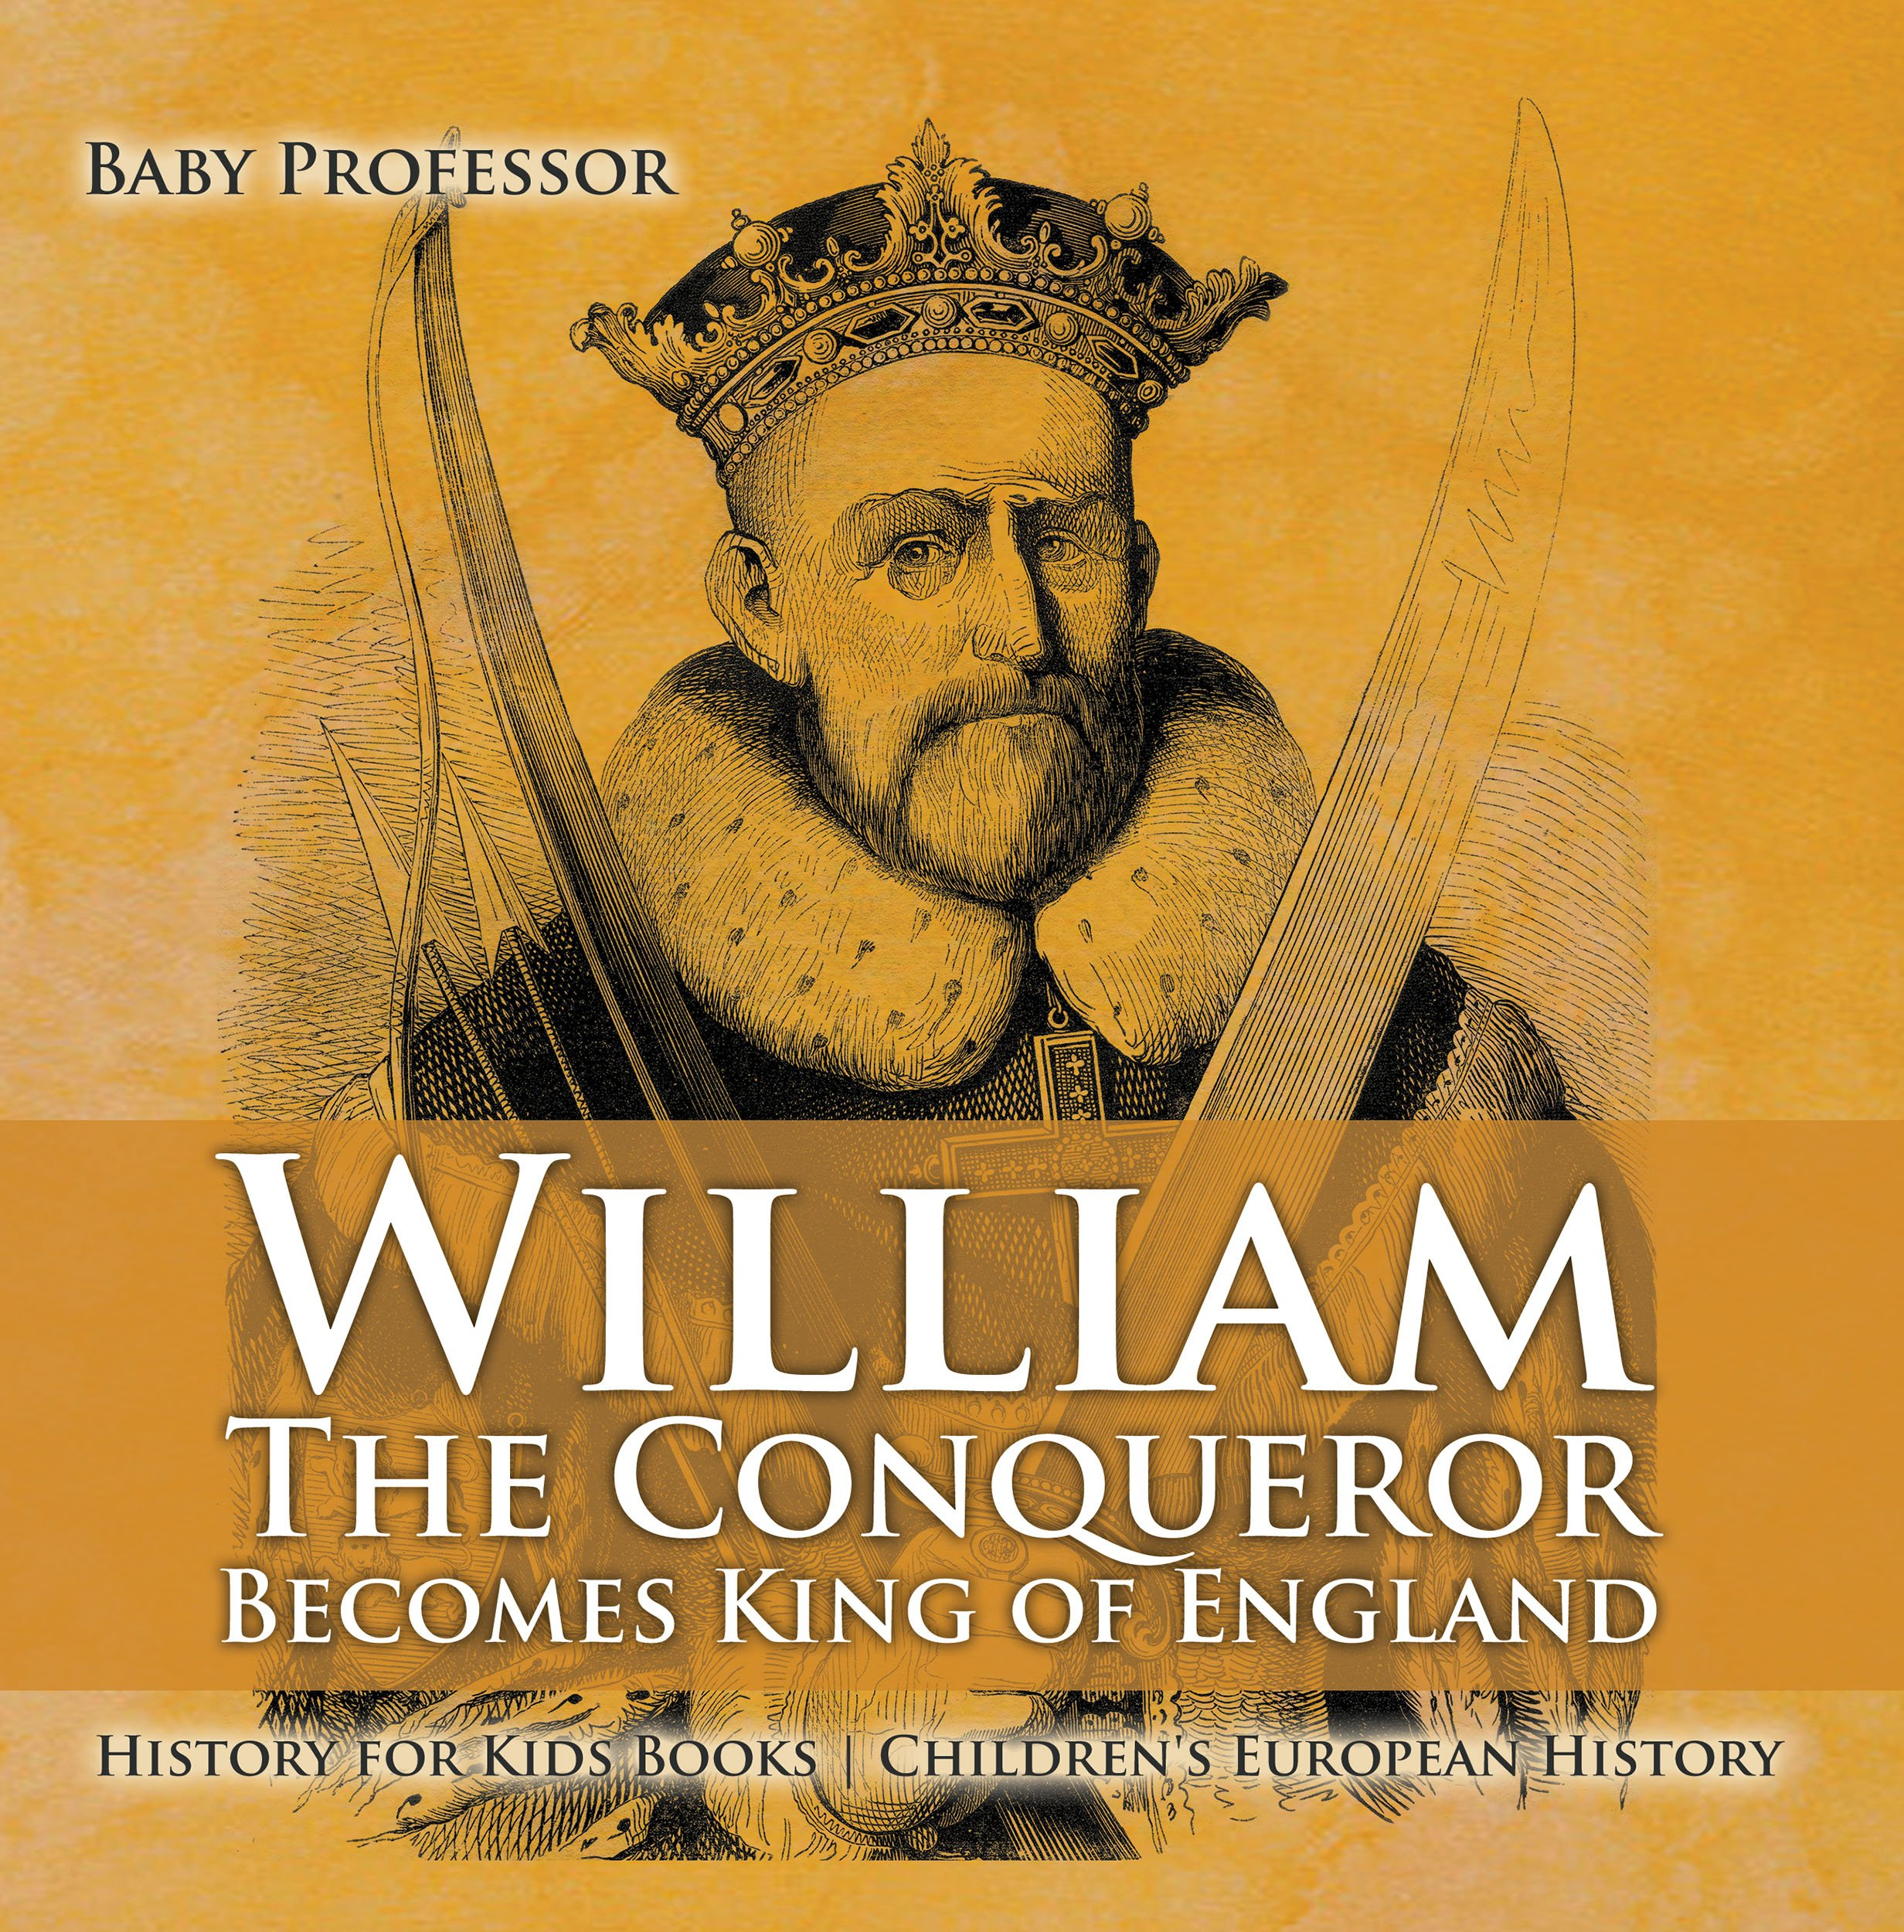 William The Conqueror Becomes King of England - History for Kids Books | Chidren's European History (English Edition)